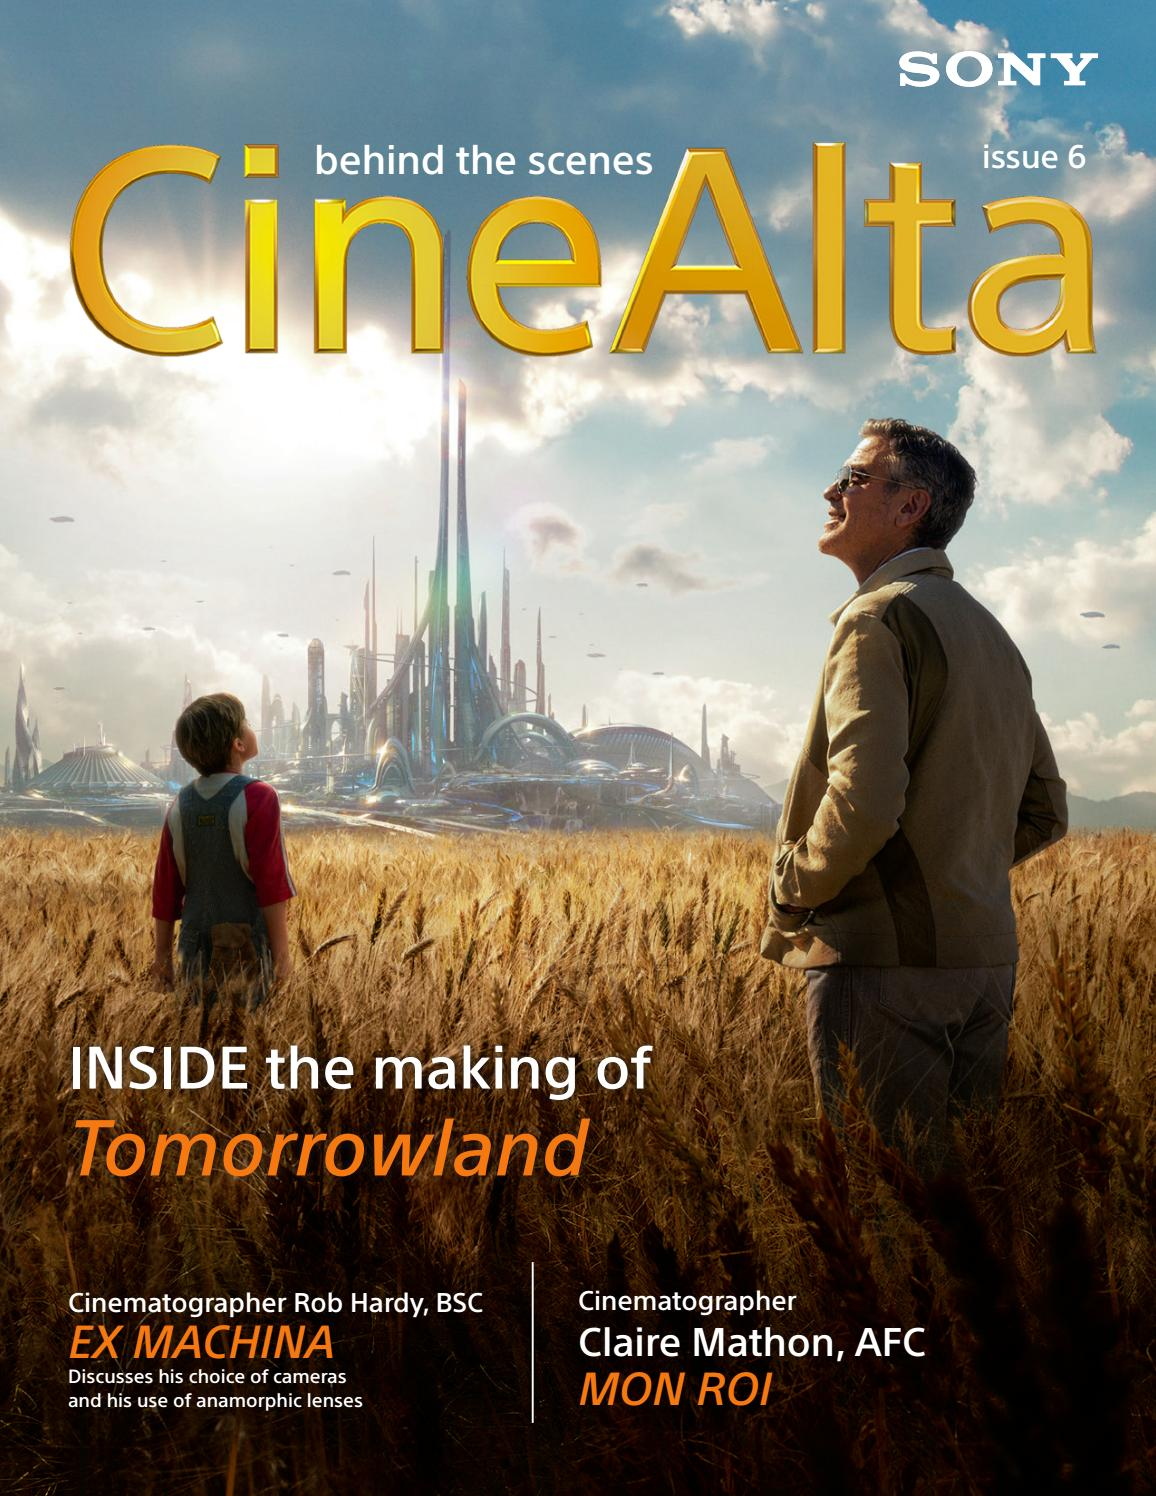 CineAlta Issue 6 By Sony Professional